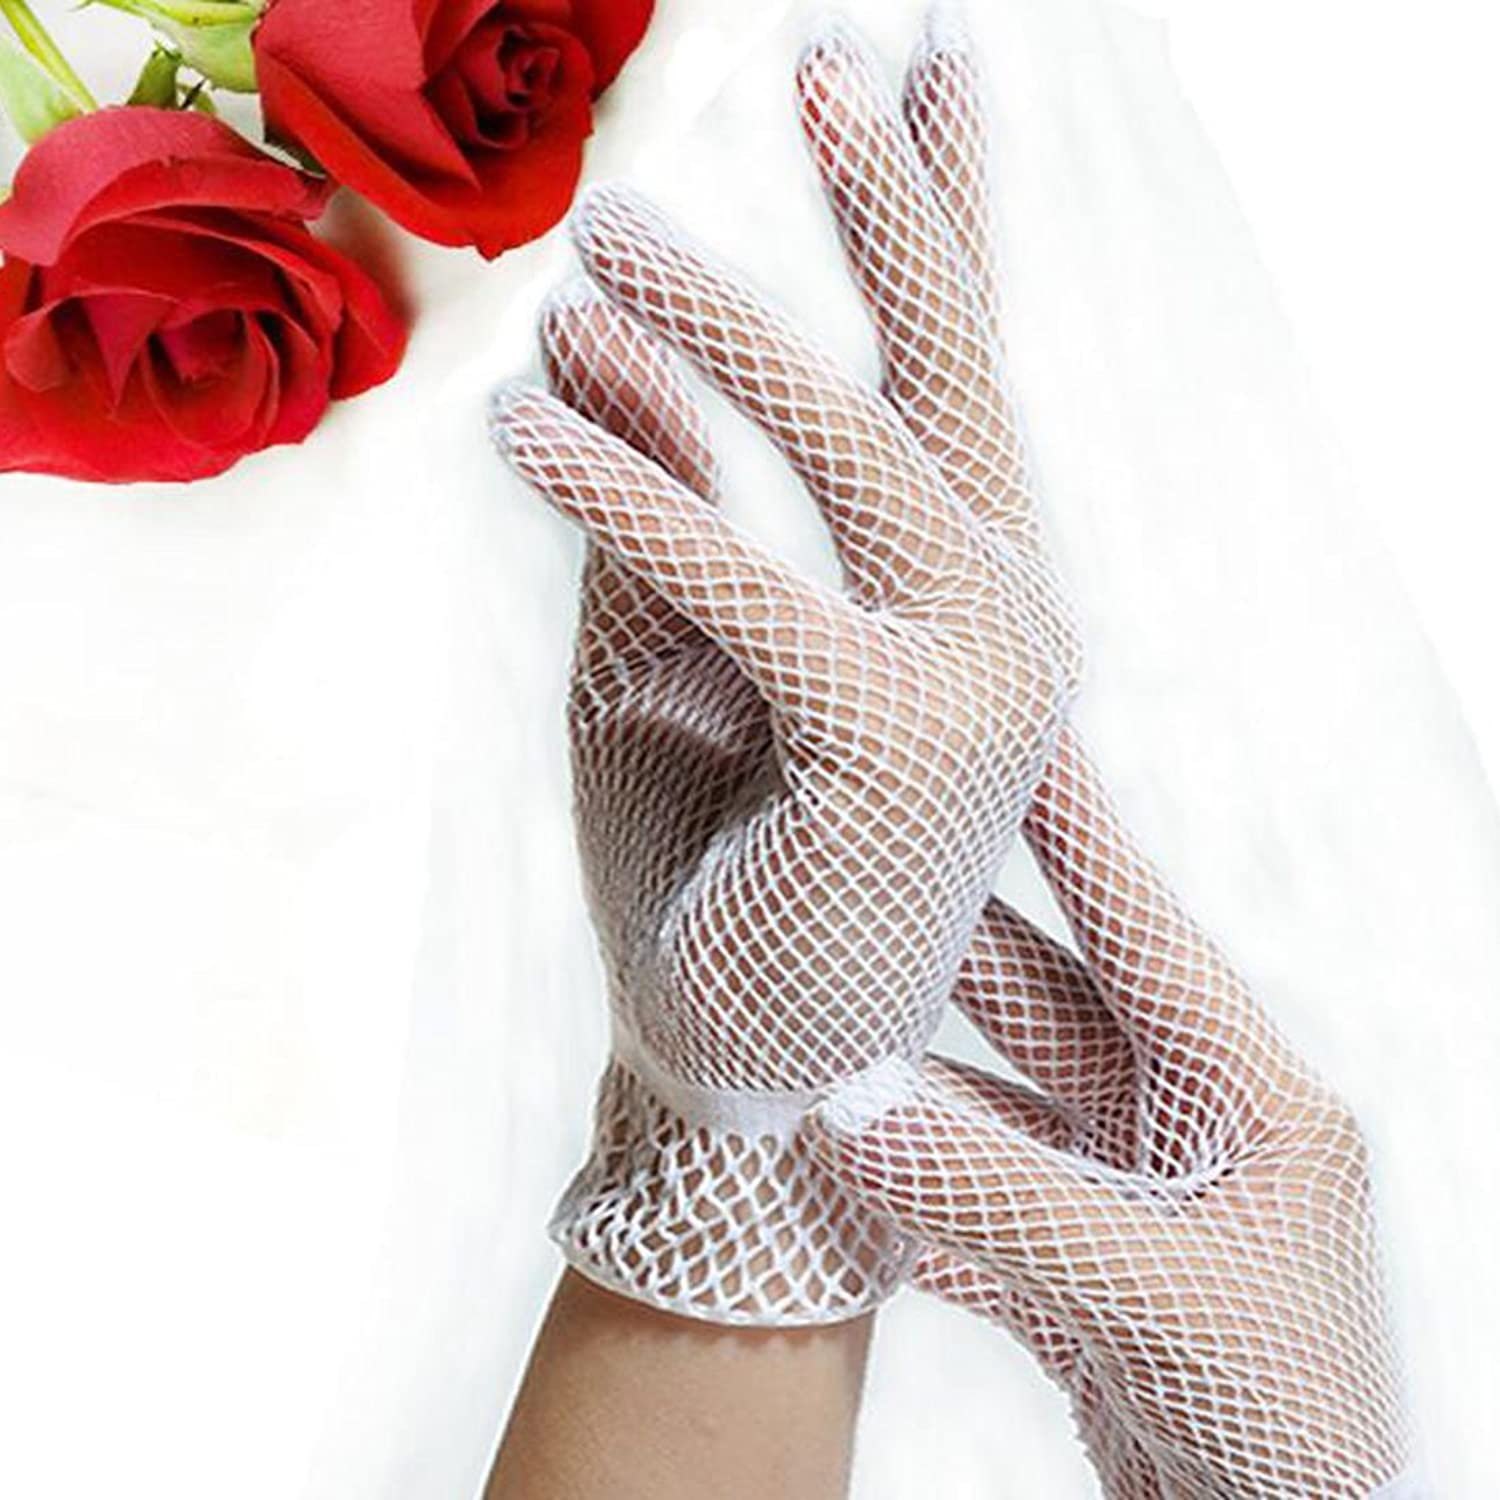 Vintage Style Gloves- Long, Wrist, Evening, Day, Leather, Lace 1 Pair Fishnet Mesh Gloves Fashion Women Gloves Summer UV Protection Lace Glove White $2.11 AT vintagedancer.com